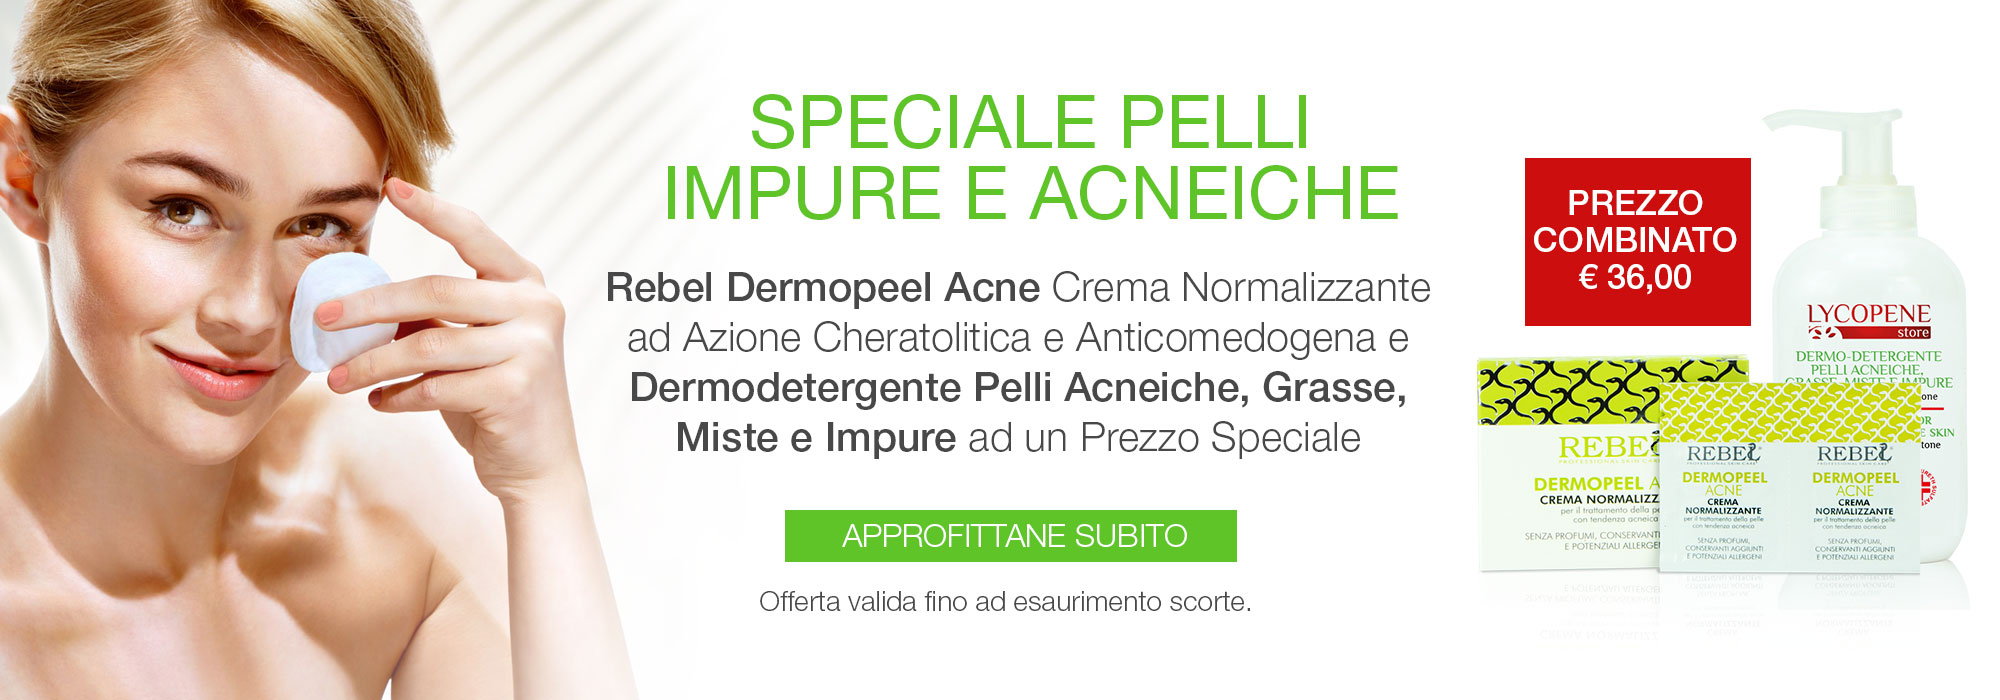 Speciale Acne